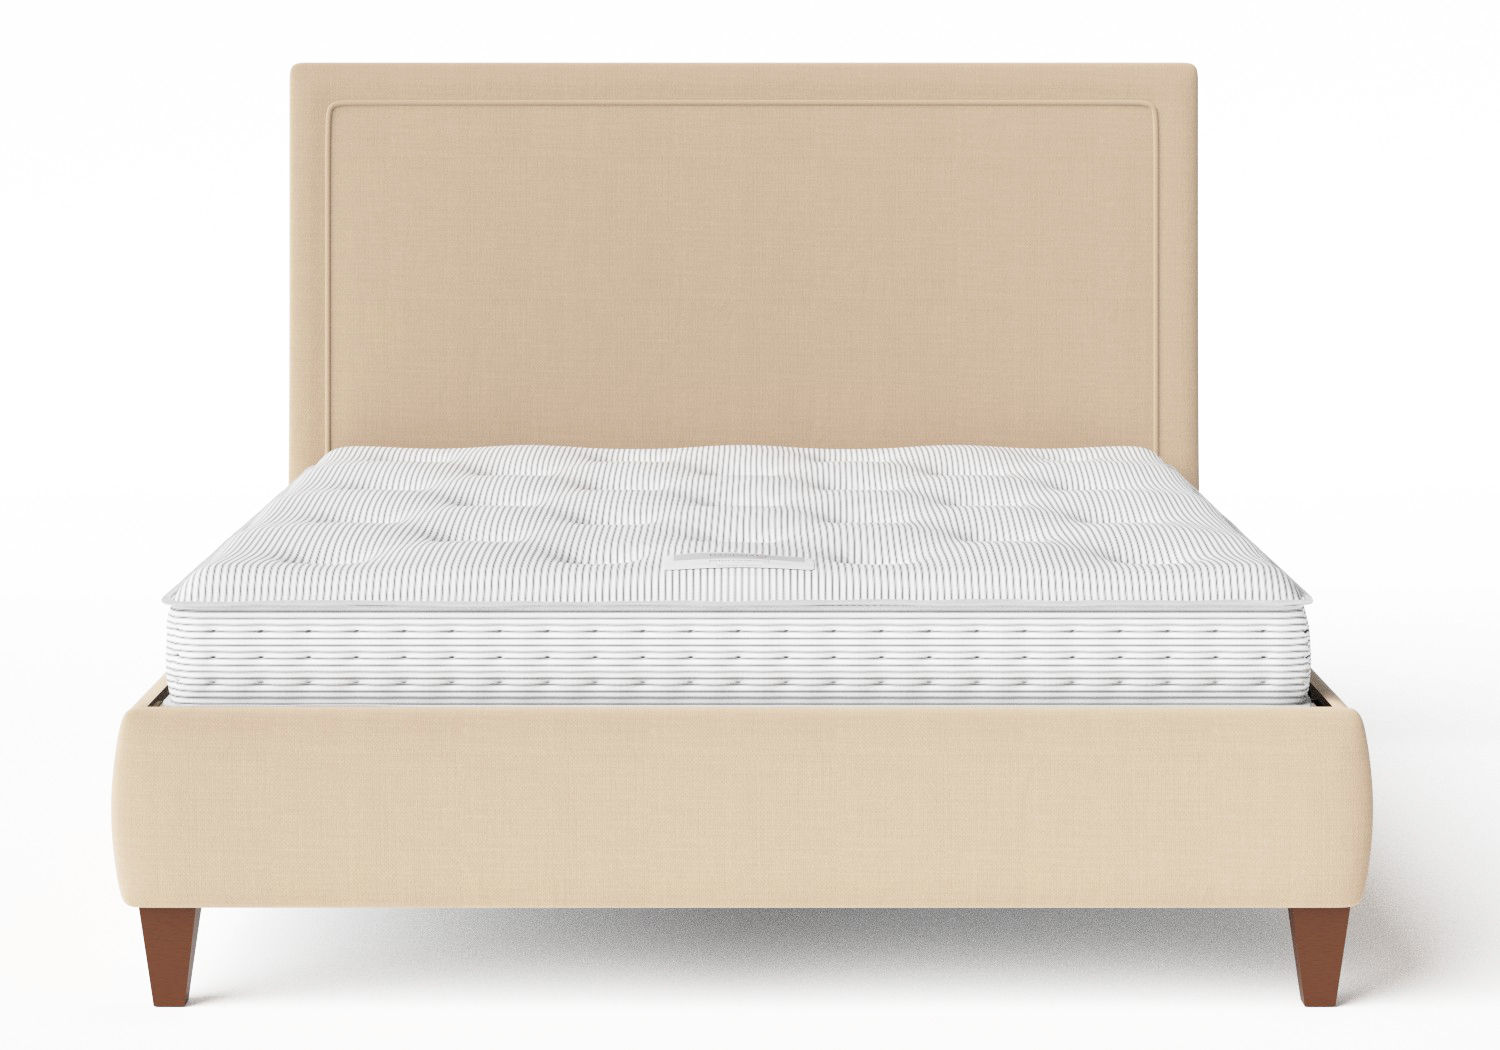 Yushan Upholstered Bed in Natural fabric shown with Juno 1 mattress